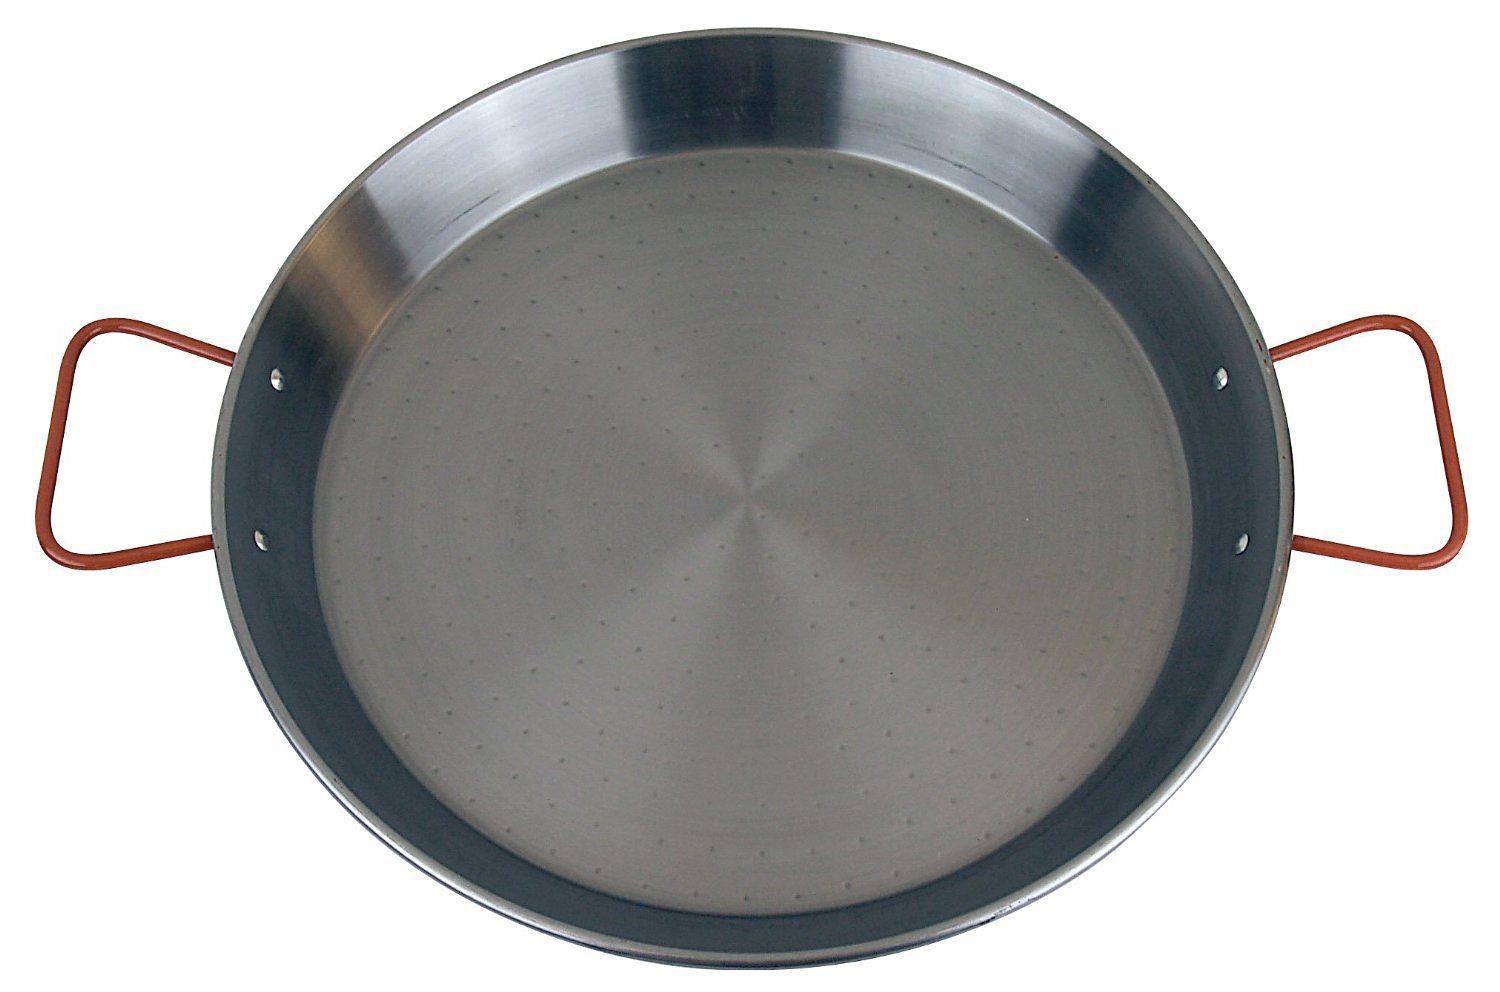 Paella Pan 15'' 38cm Carbon Steel, Red Handle, Made in Spain, by The Cook's Connection